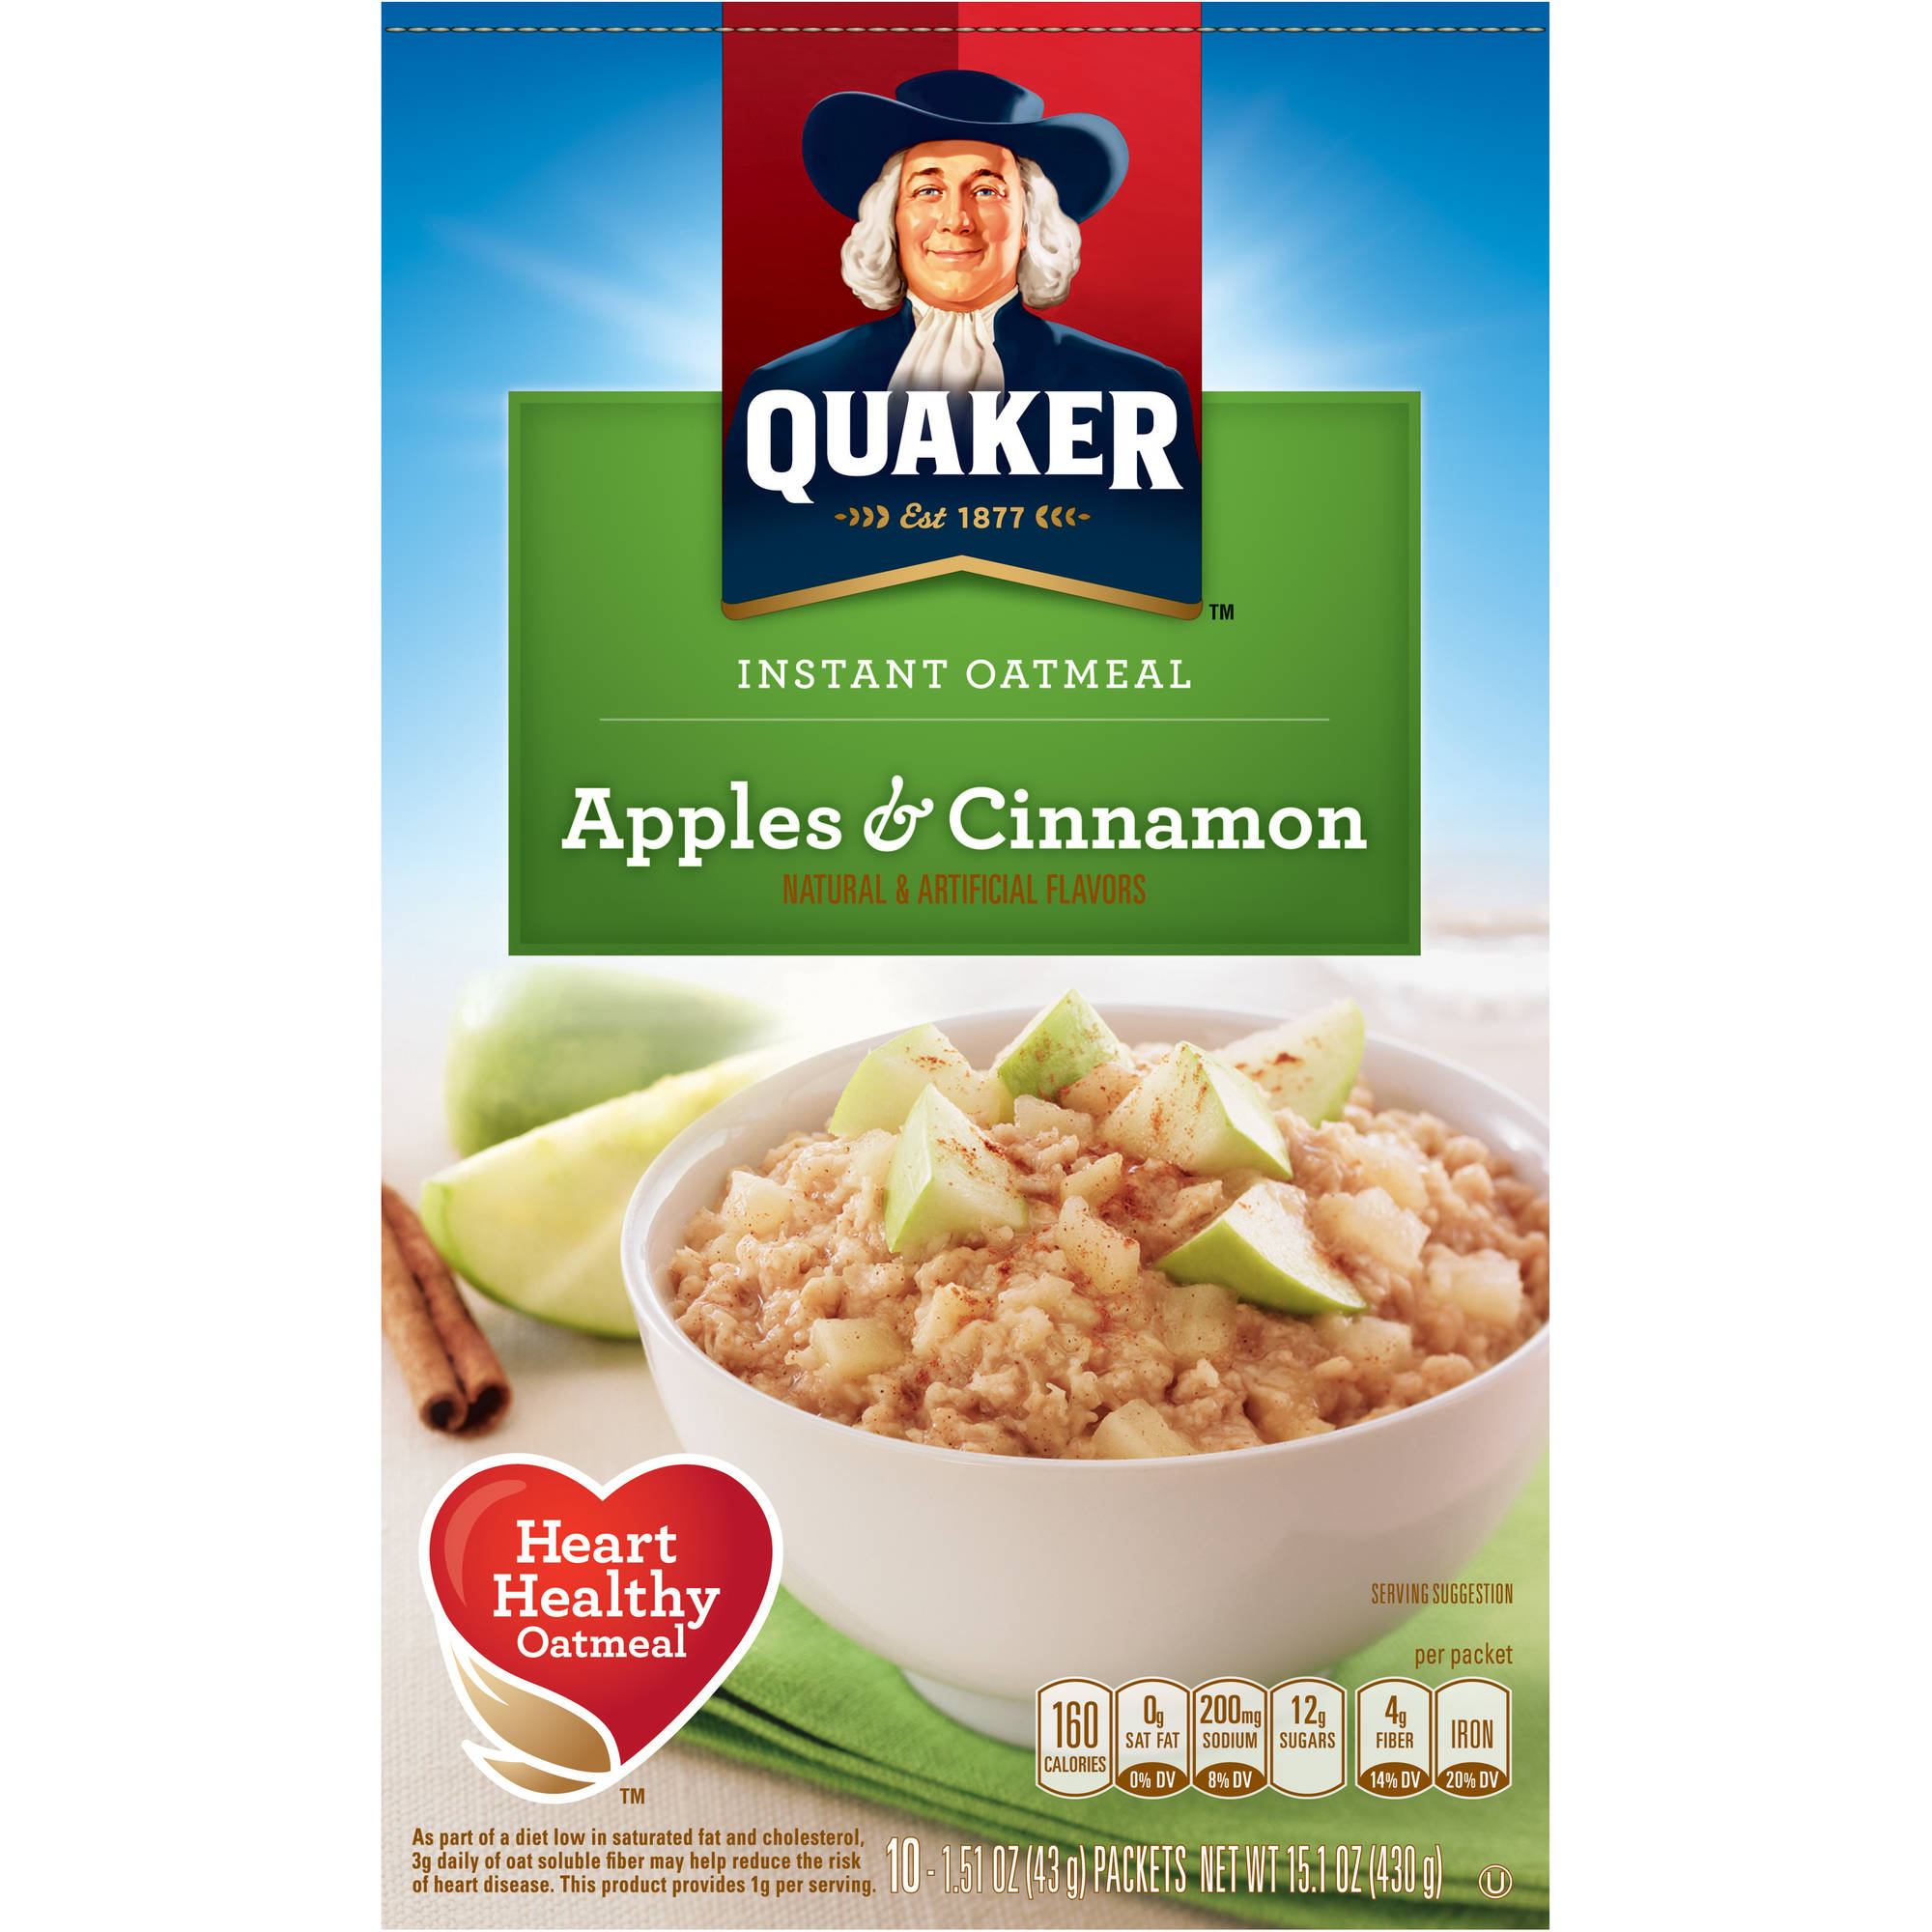 Quaker Apples & Cinnamon Instant Oatmeal, 1.51 oz, 10 count